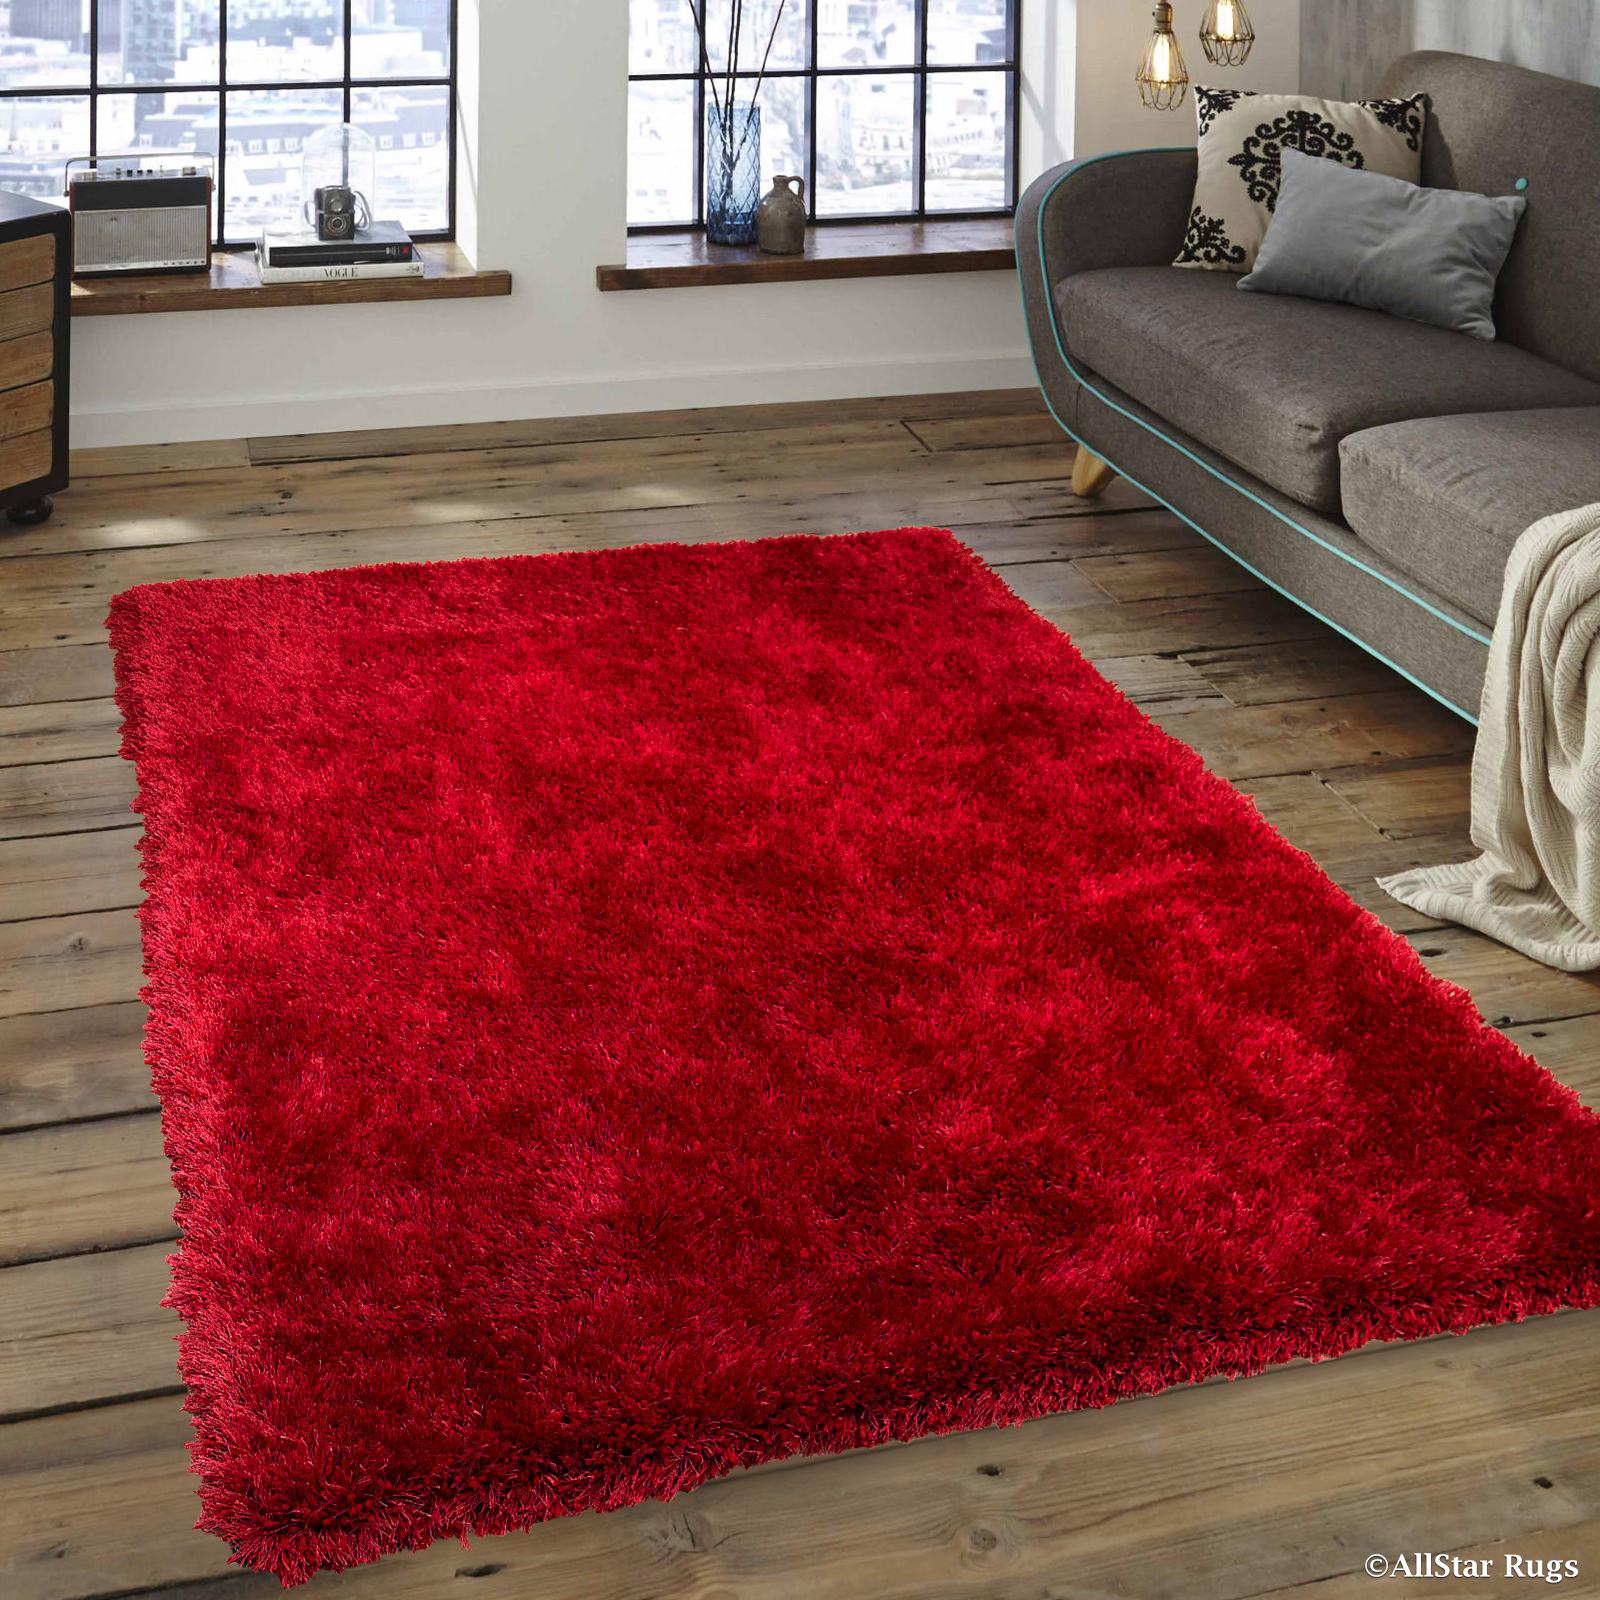 Allstar Red High Density And High Quality High End Shaggy Area Rug. Very  Soft Extra